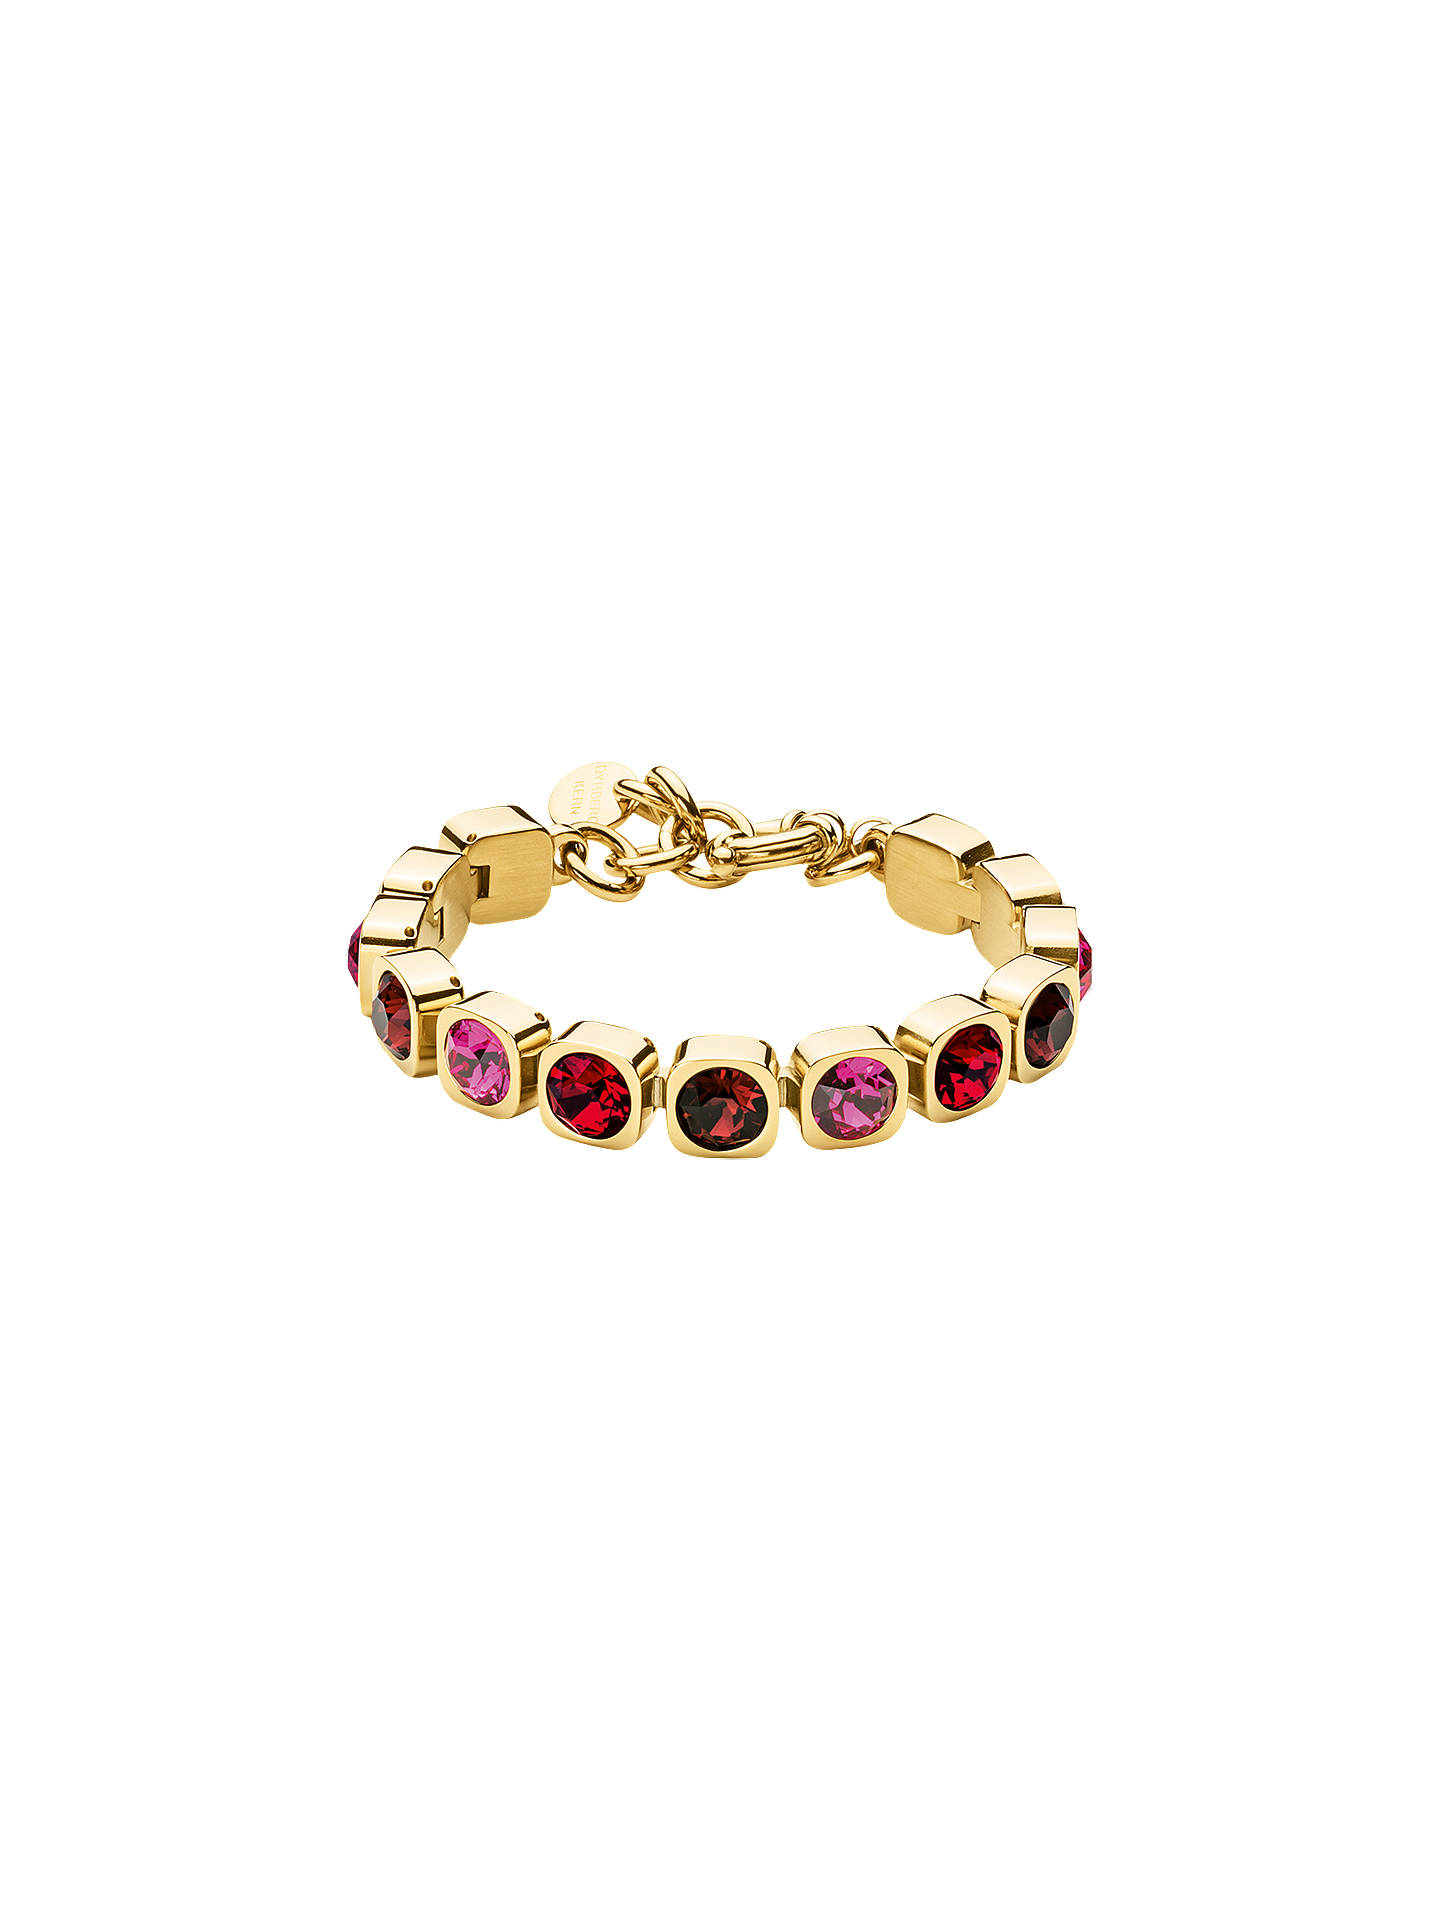 BuyDYRBERG/KERN Swarovski Crystals Tennis Bracelet, Gold/Red Online at johnlewis.com